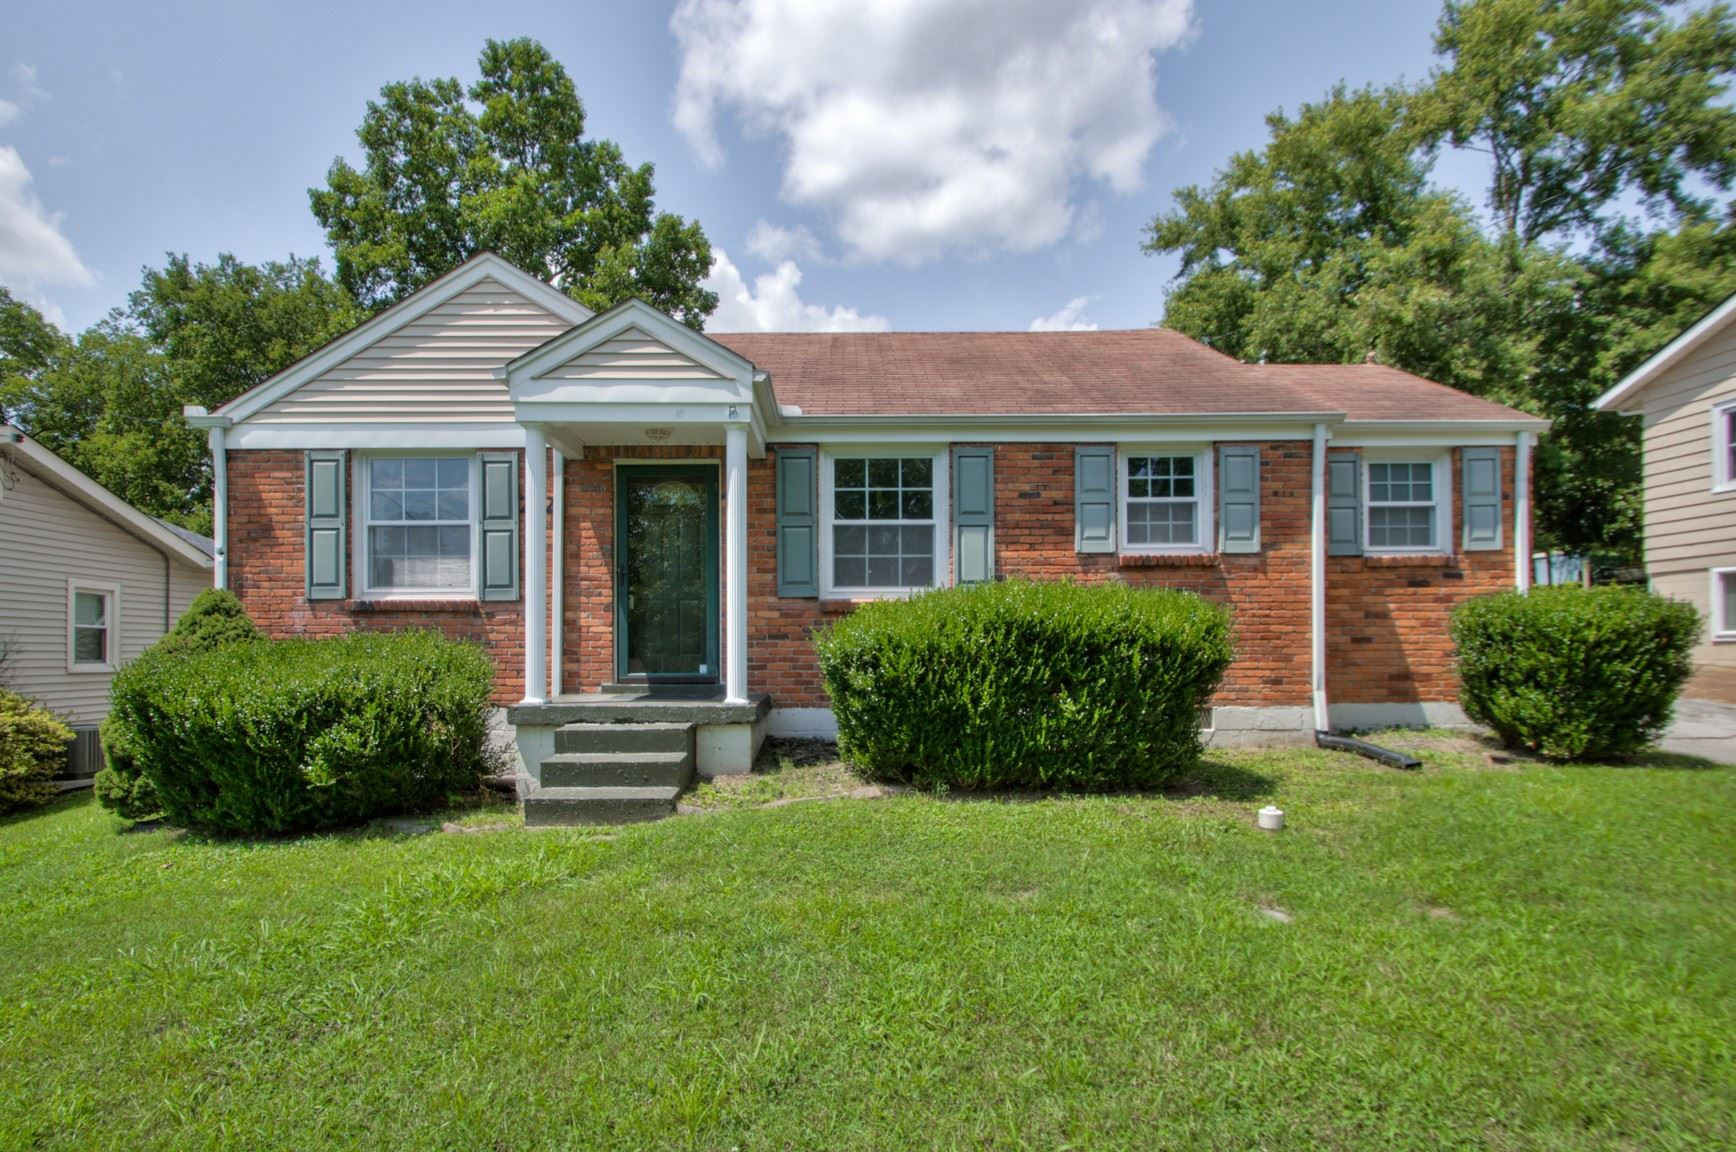 212 Pitts Ave, Old Hickory, TN 37138 - MLS#: 2177821